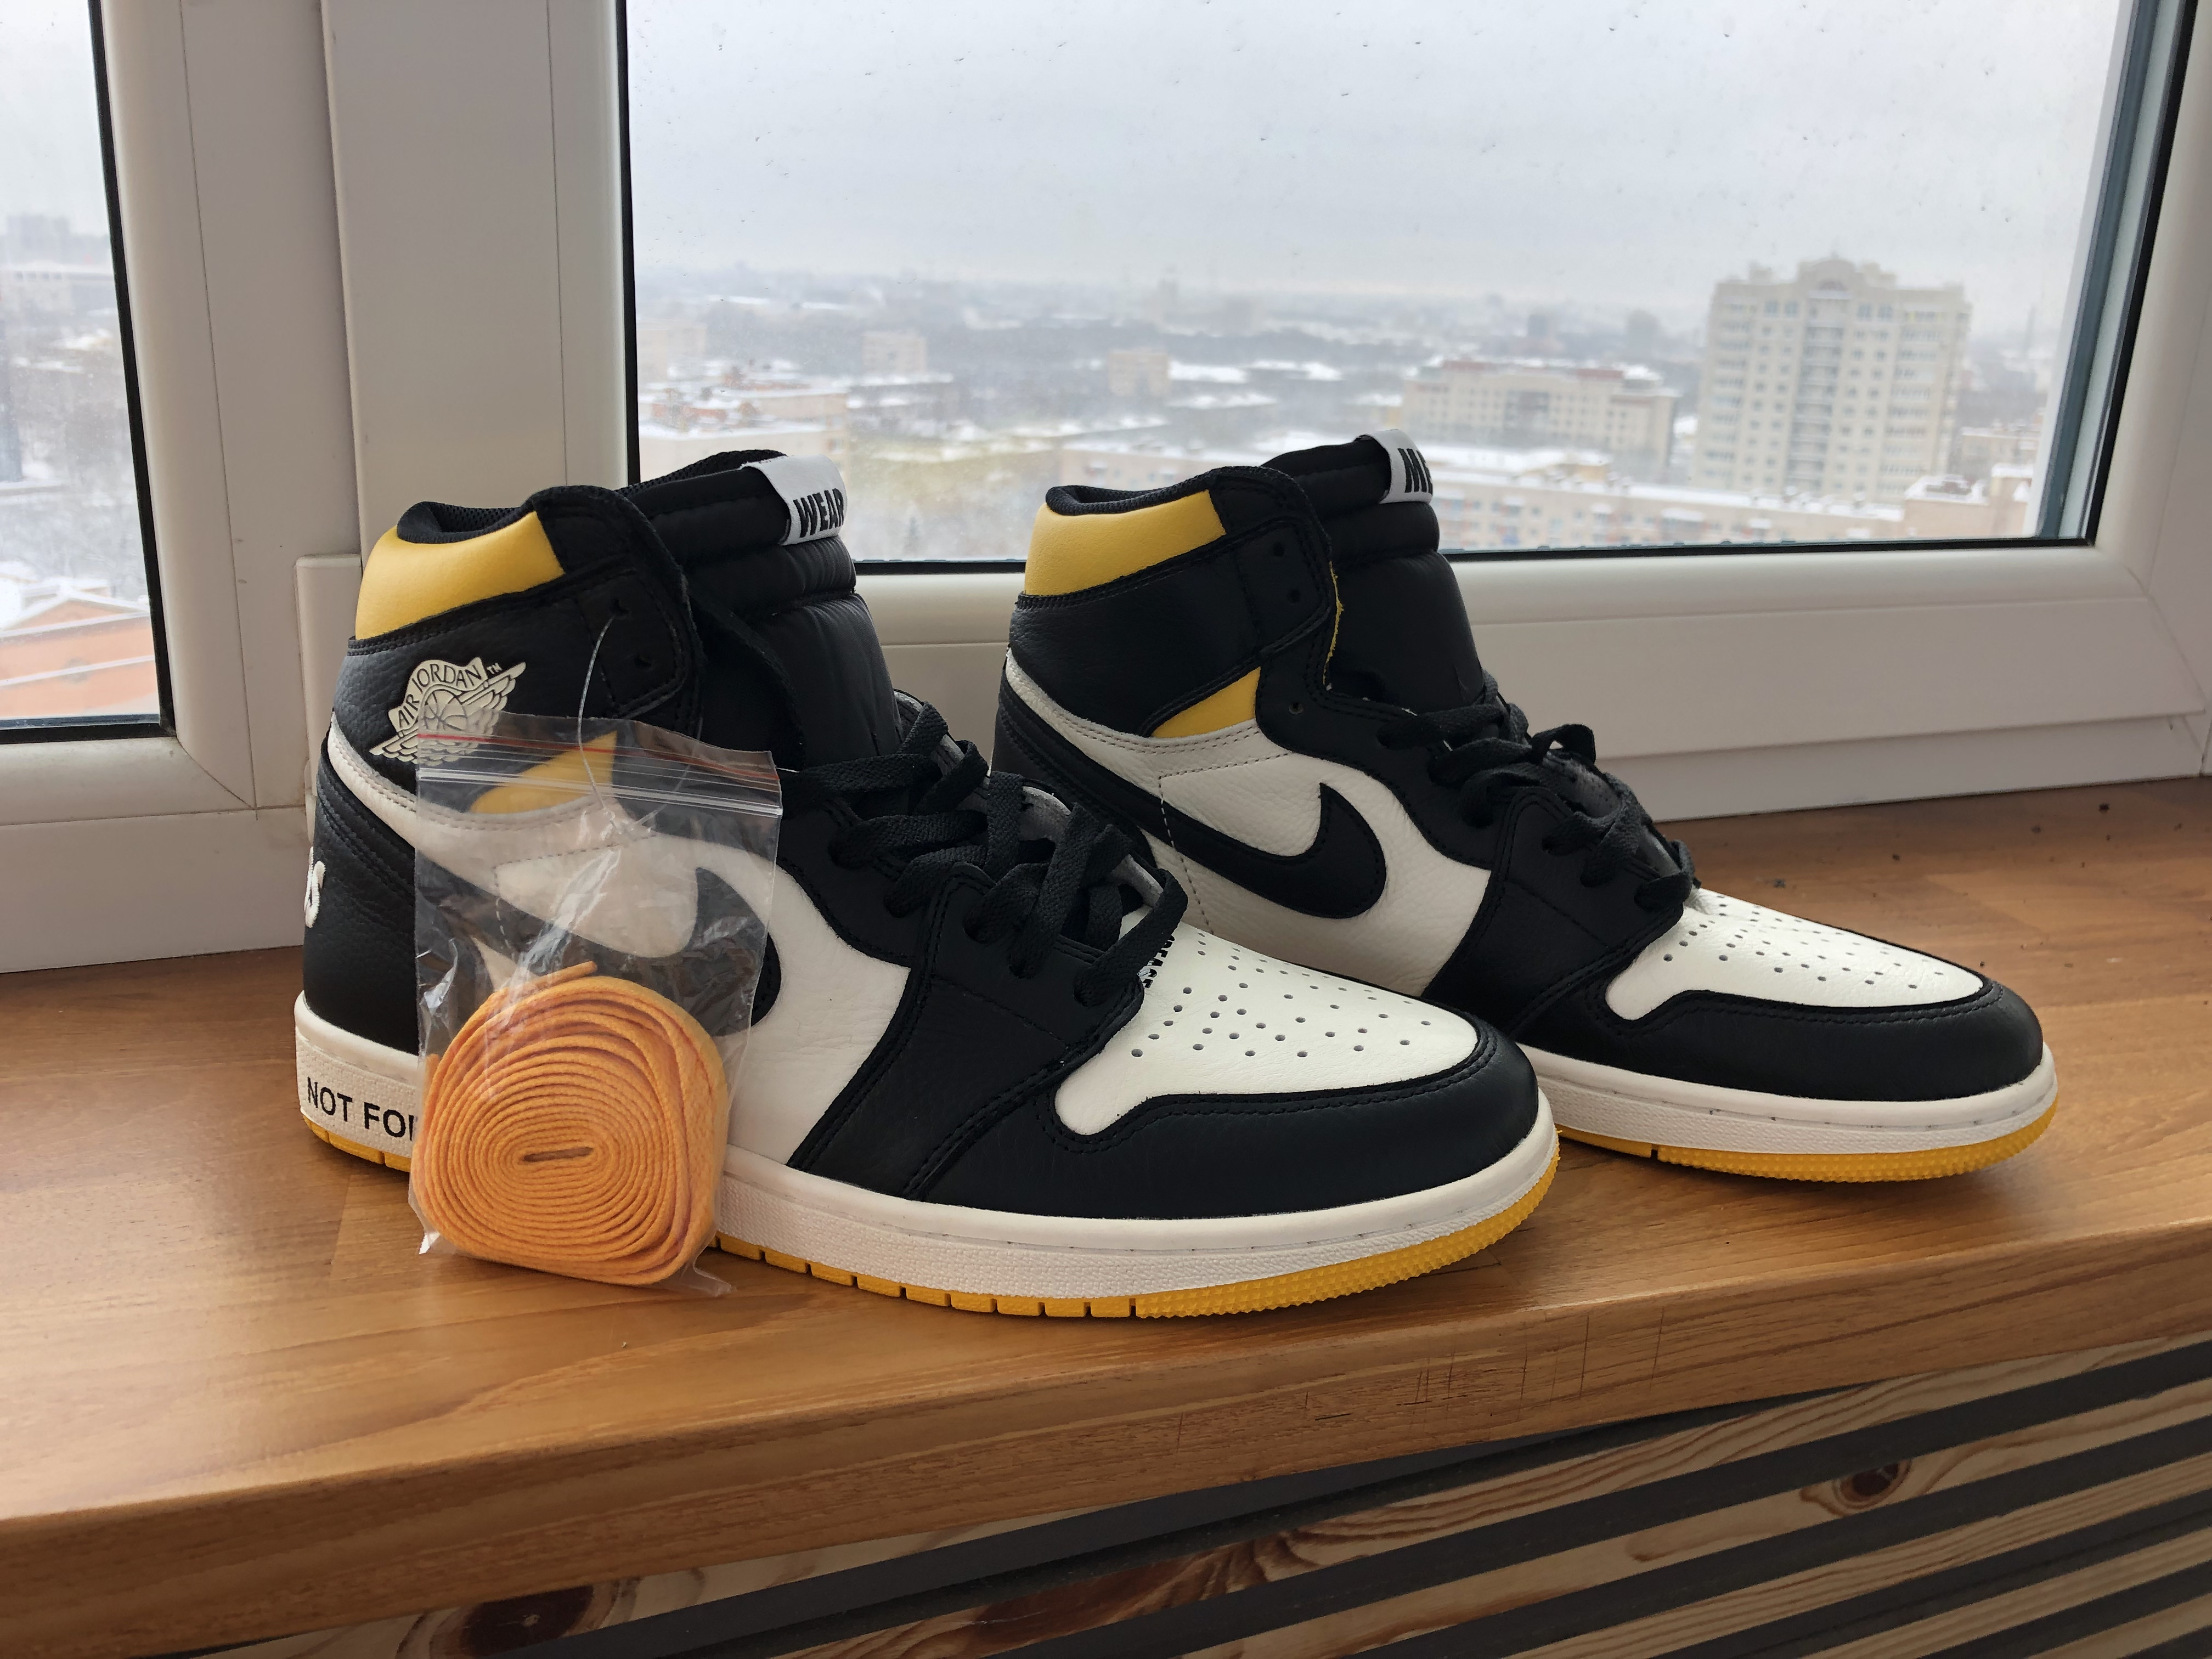 1fc789790bfa Nike ×. Air Jordan 1 Retro High OG NRG Not For Resale Yellow Varsity Maize